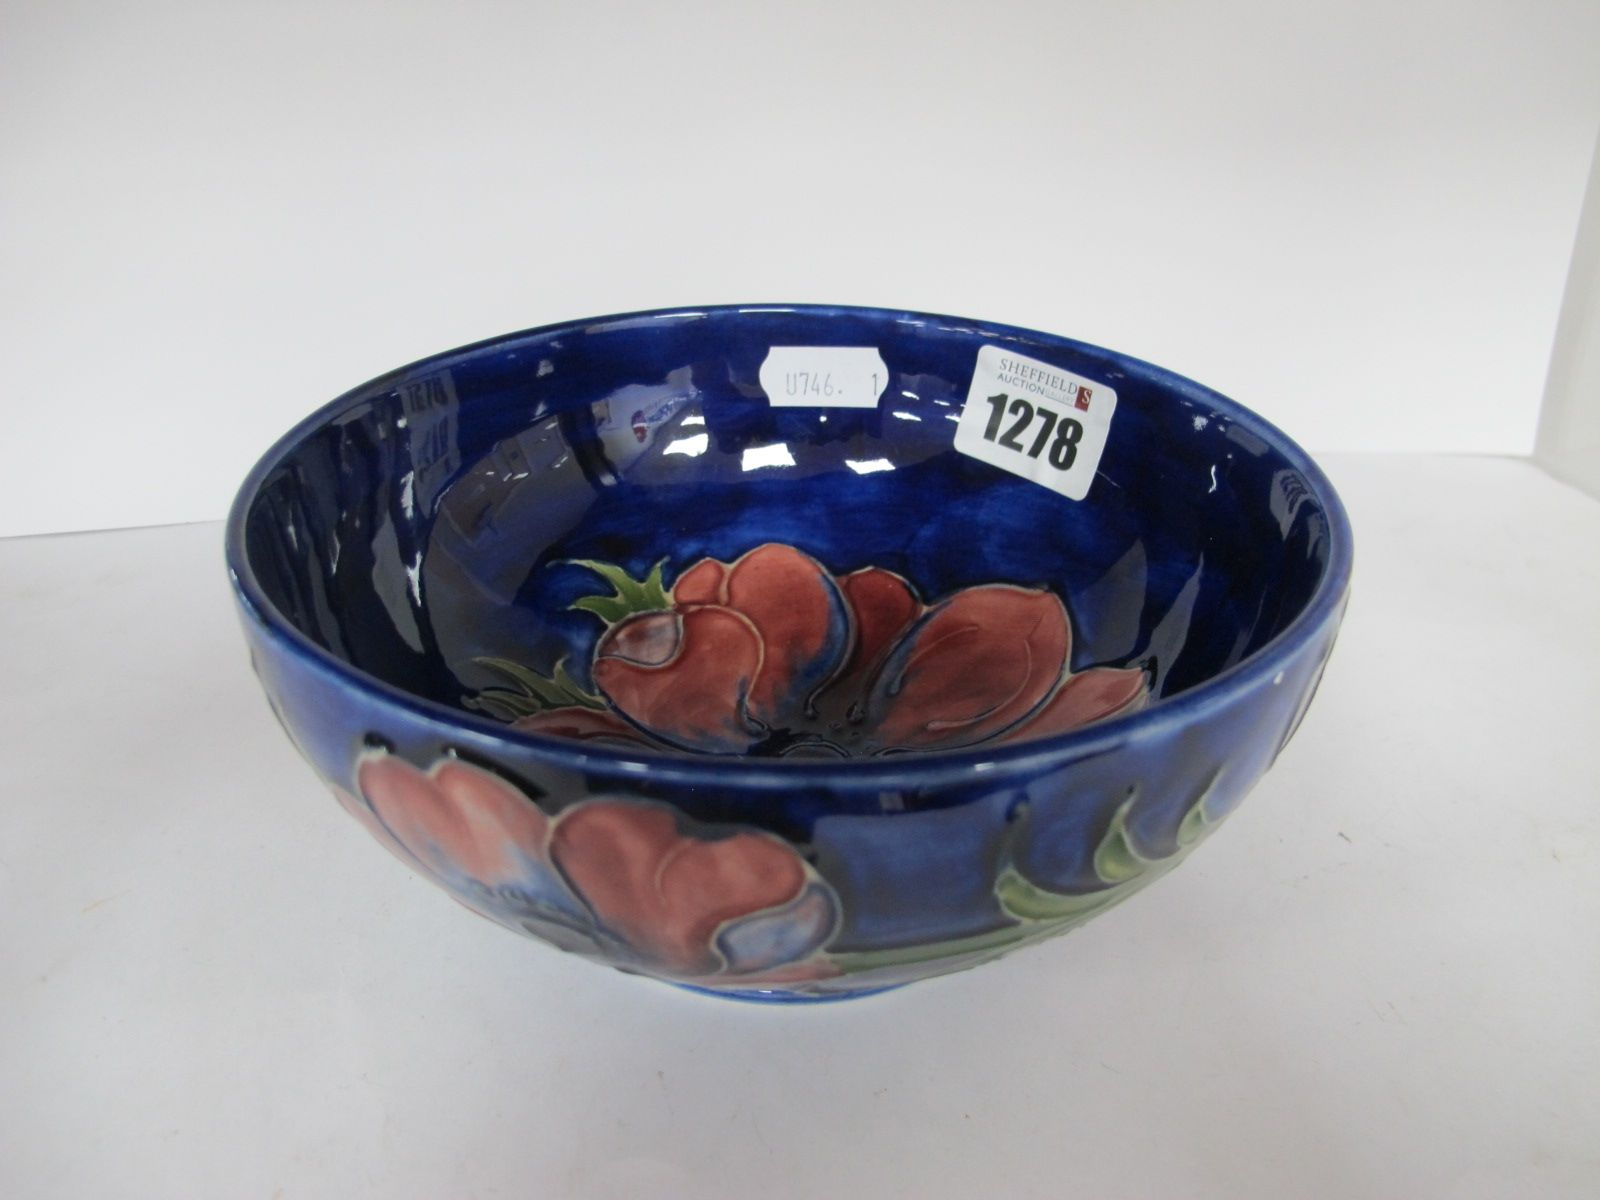 A Moorcroft Pottery Bowl, red floral decoration on blue ground, 16cm diameter, painted and impressed